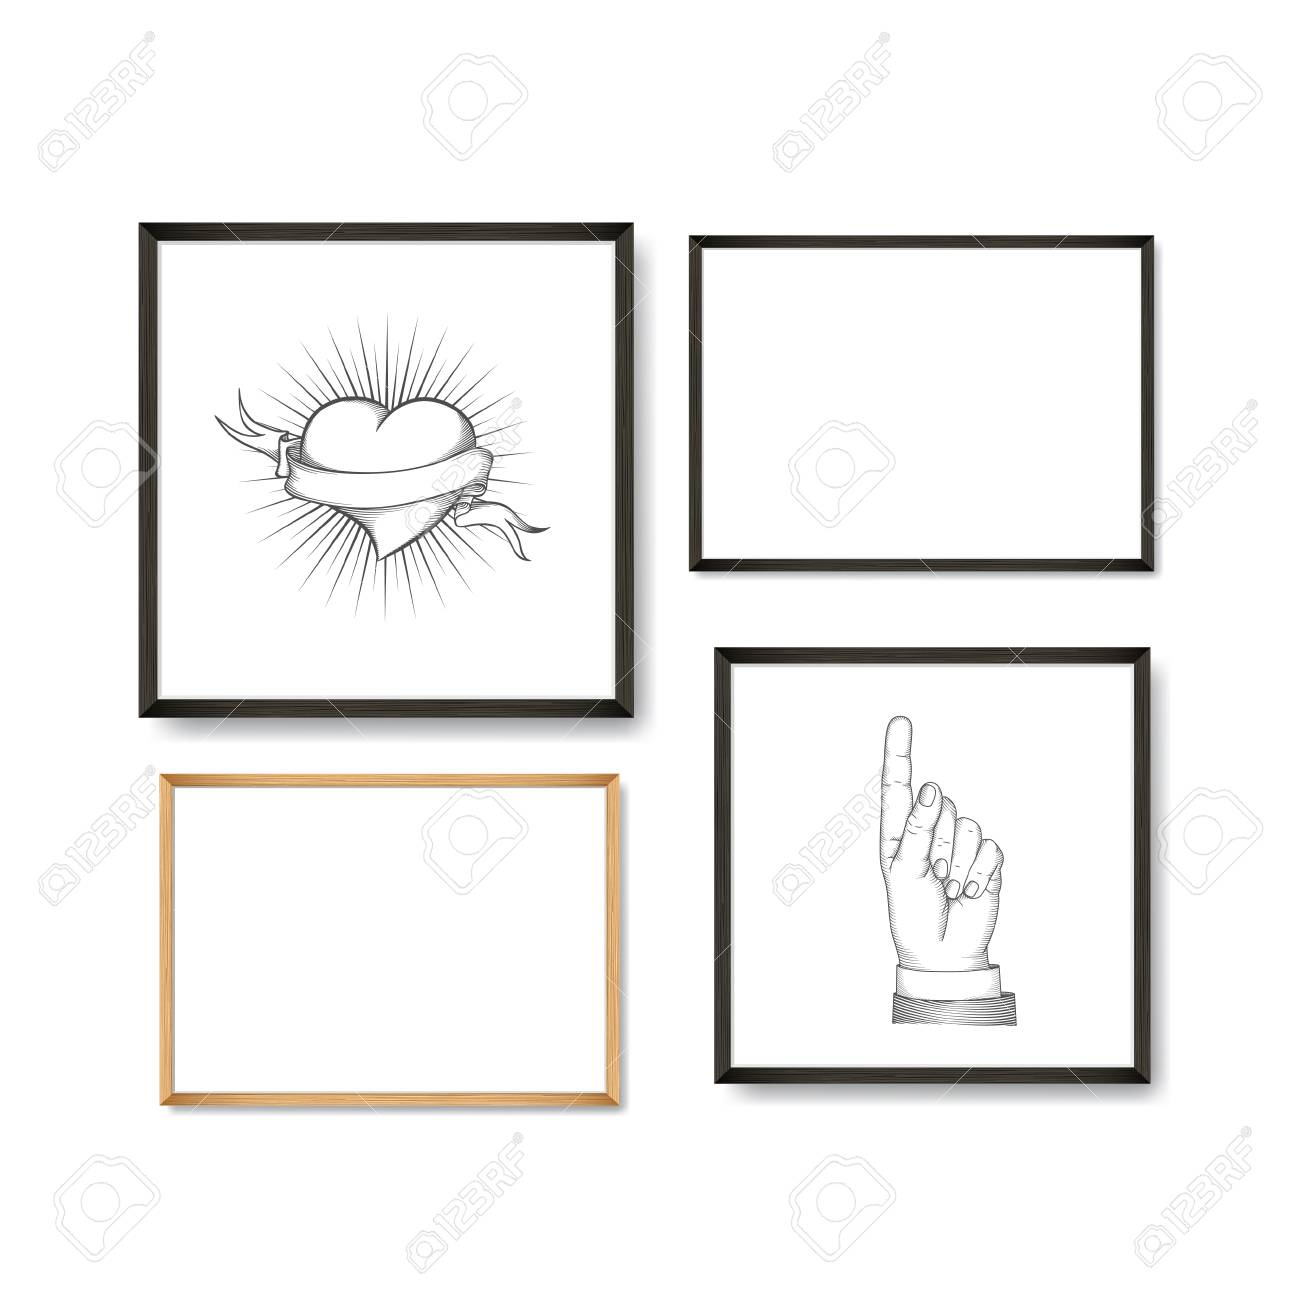 Set of Realistic Light and Dark Wooden Picture Frames on a White Wall, isolated on white. Design Template for Mock Up. Square and rectangle A4 shapes. Vector - 105719743